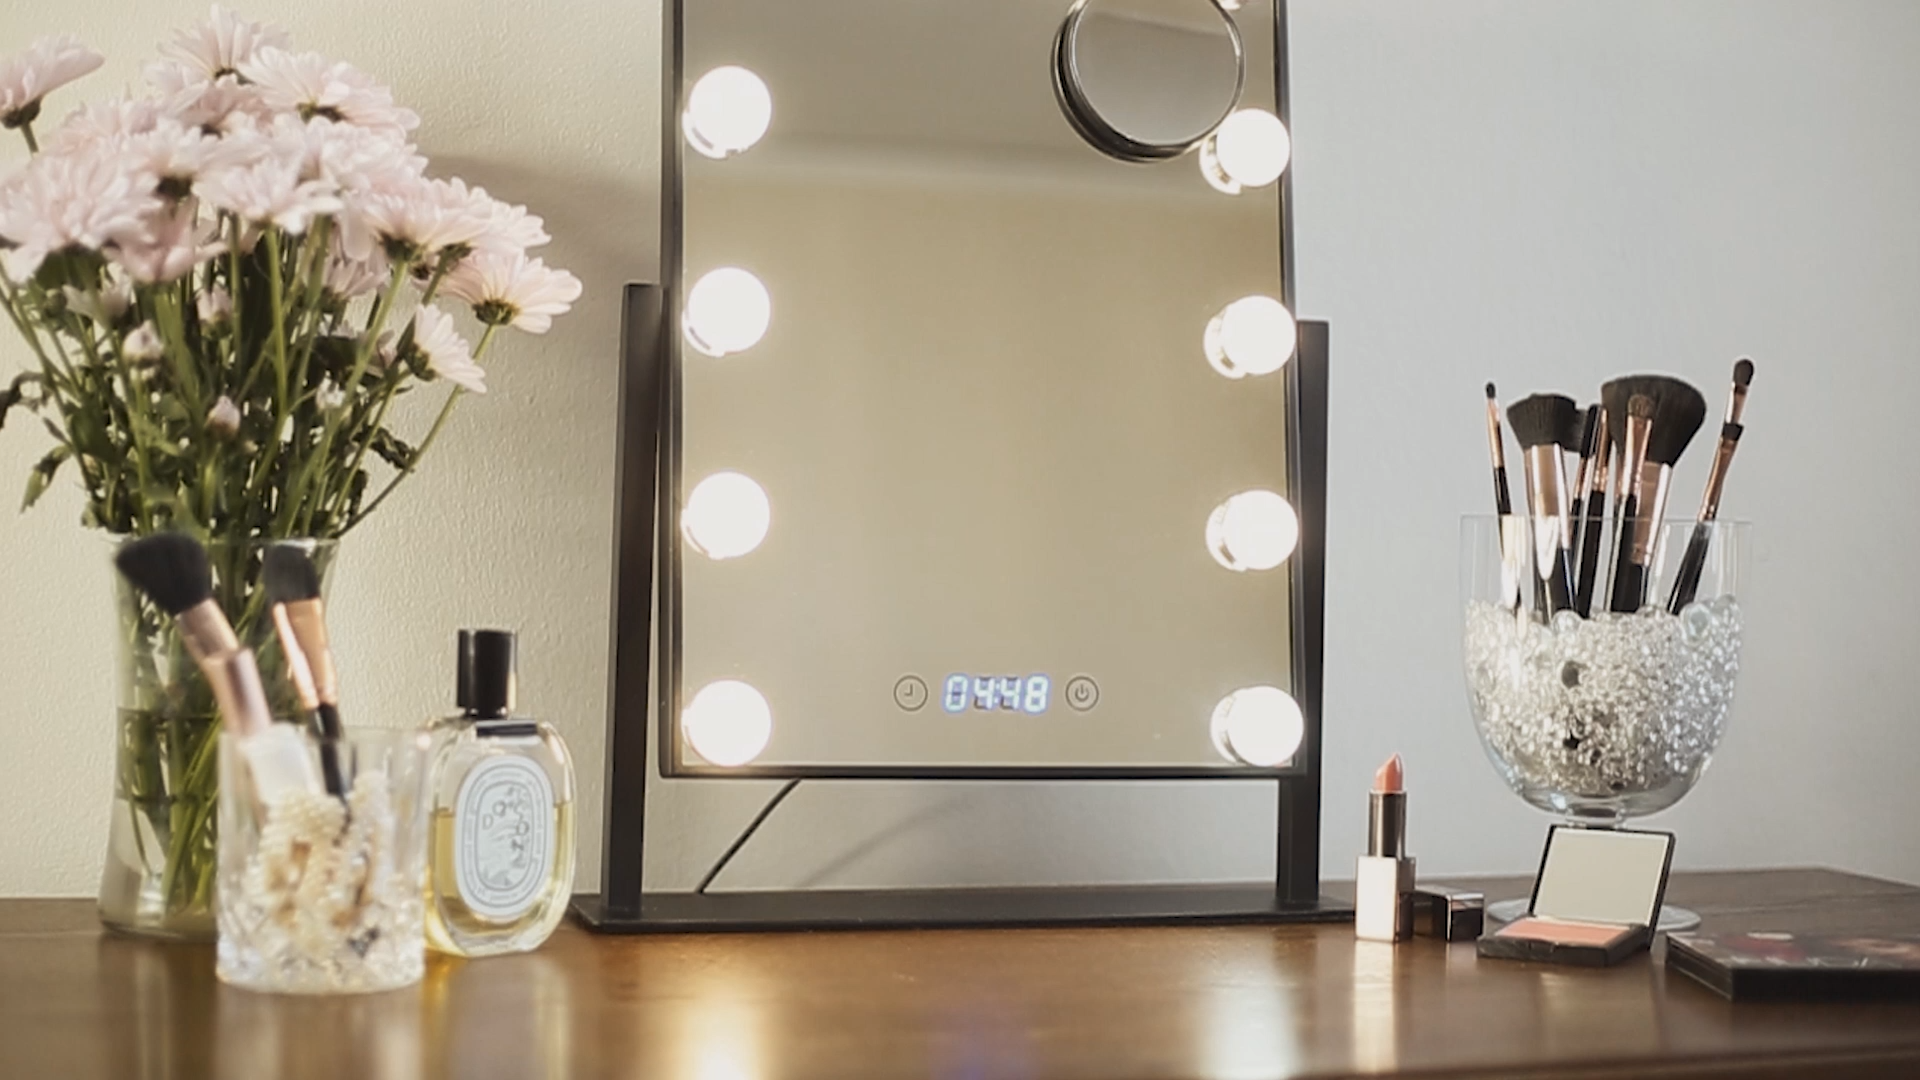 Black Vanity Mirror with 10x Magnification -   16 makeup For Teens mirror ideas